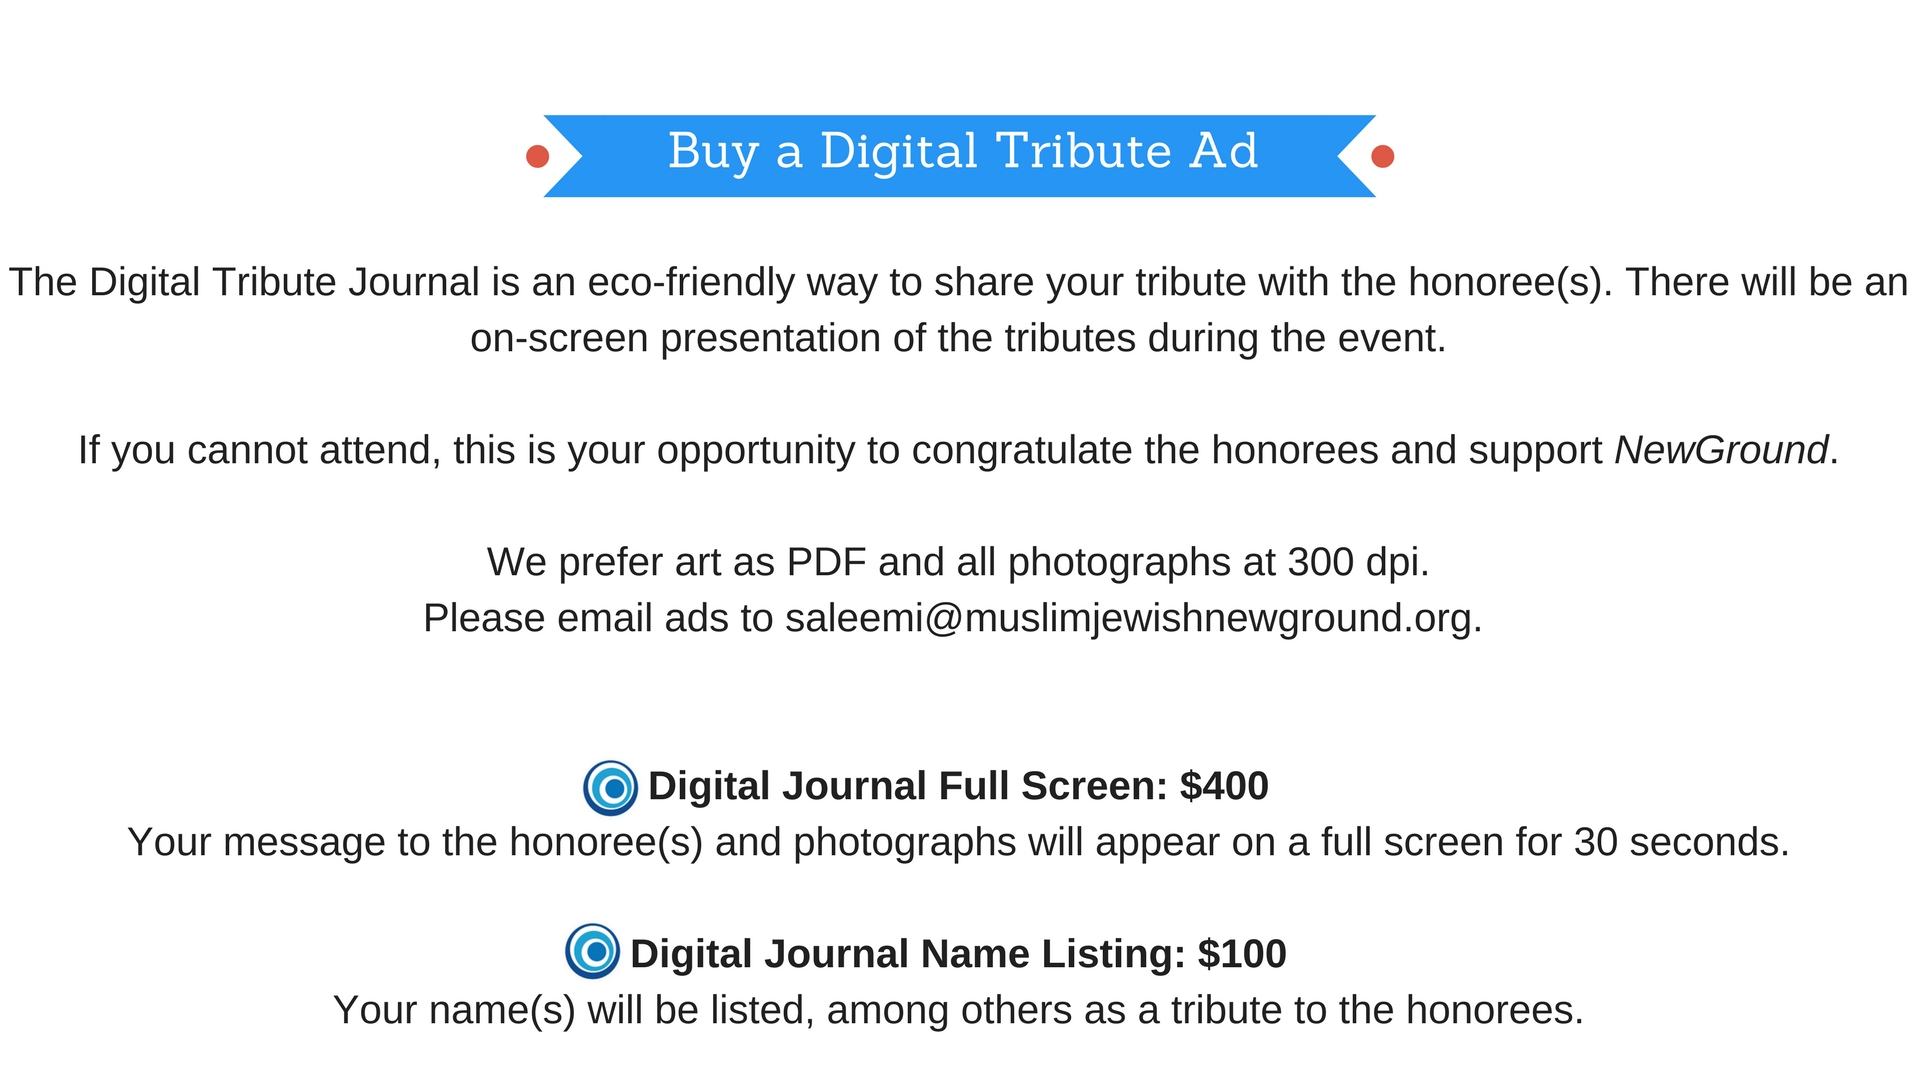 Buy_a_Digital_Tribute_Ad.jpg